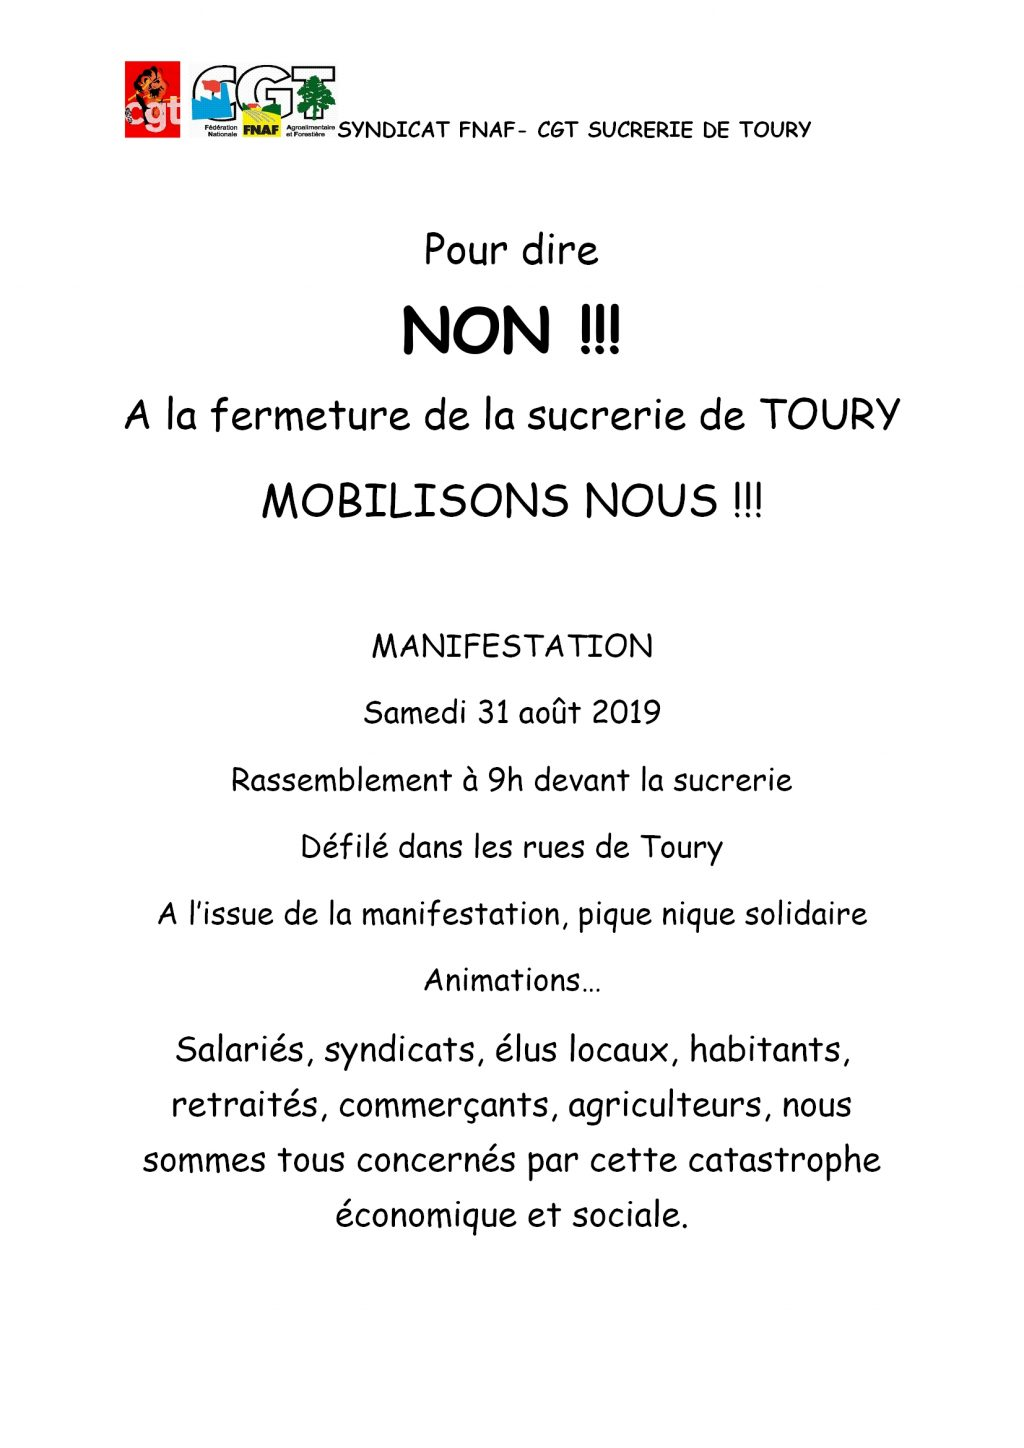 Tract Toury Sucrerie CGT Rassemblement 31-08-2019 Verso